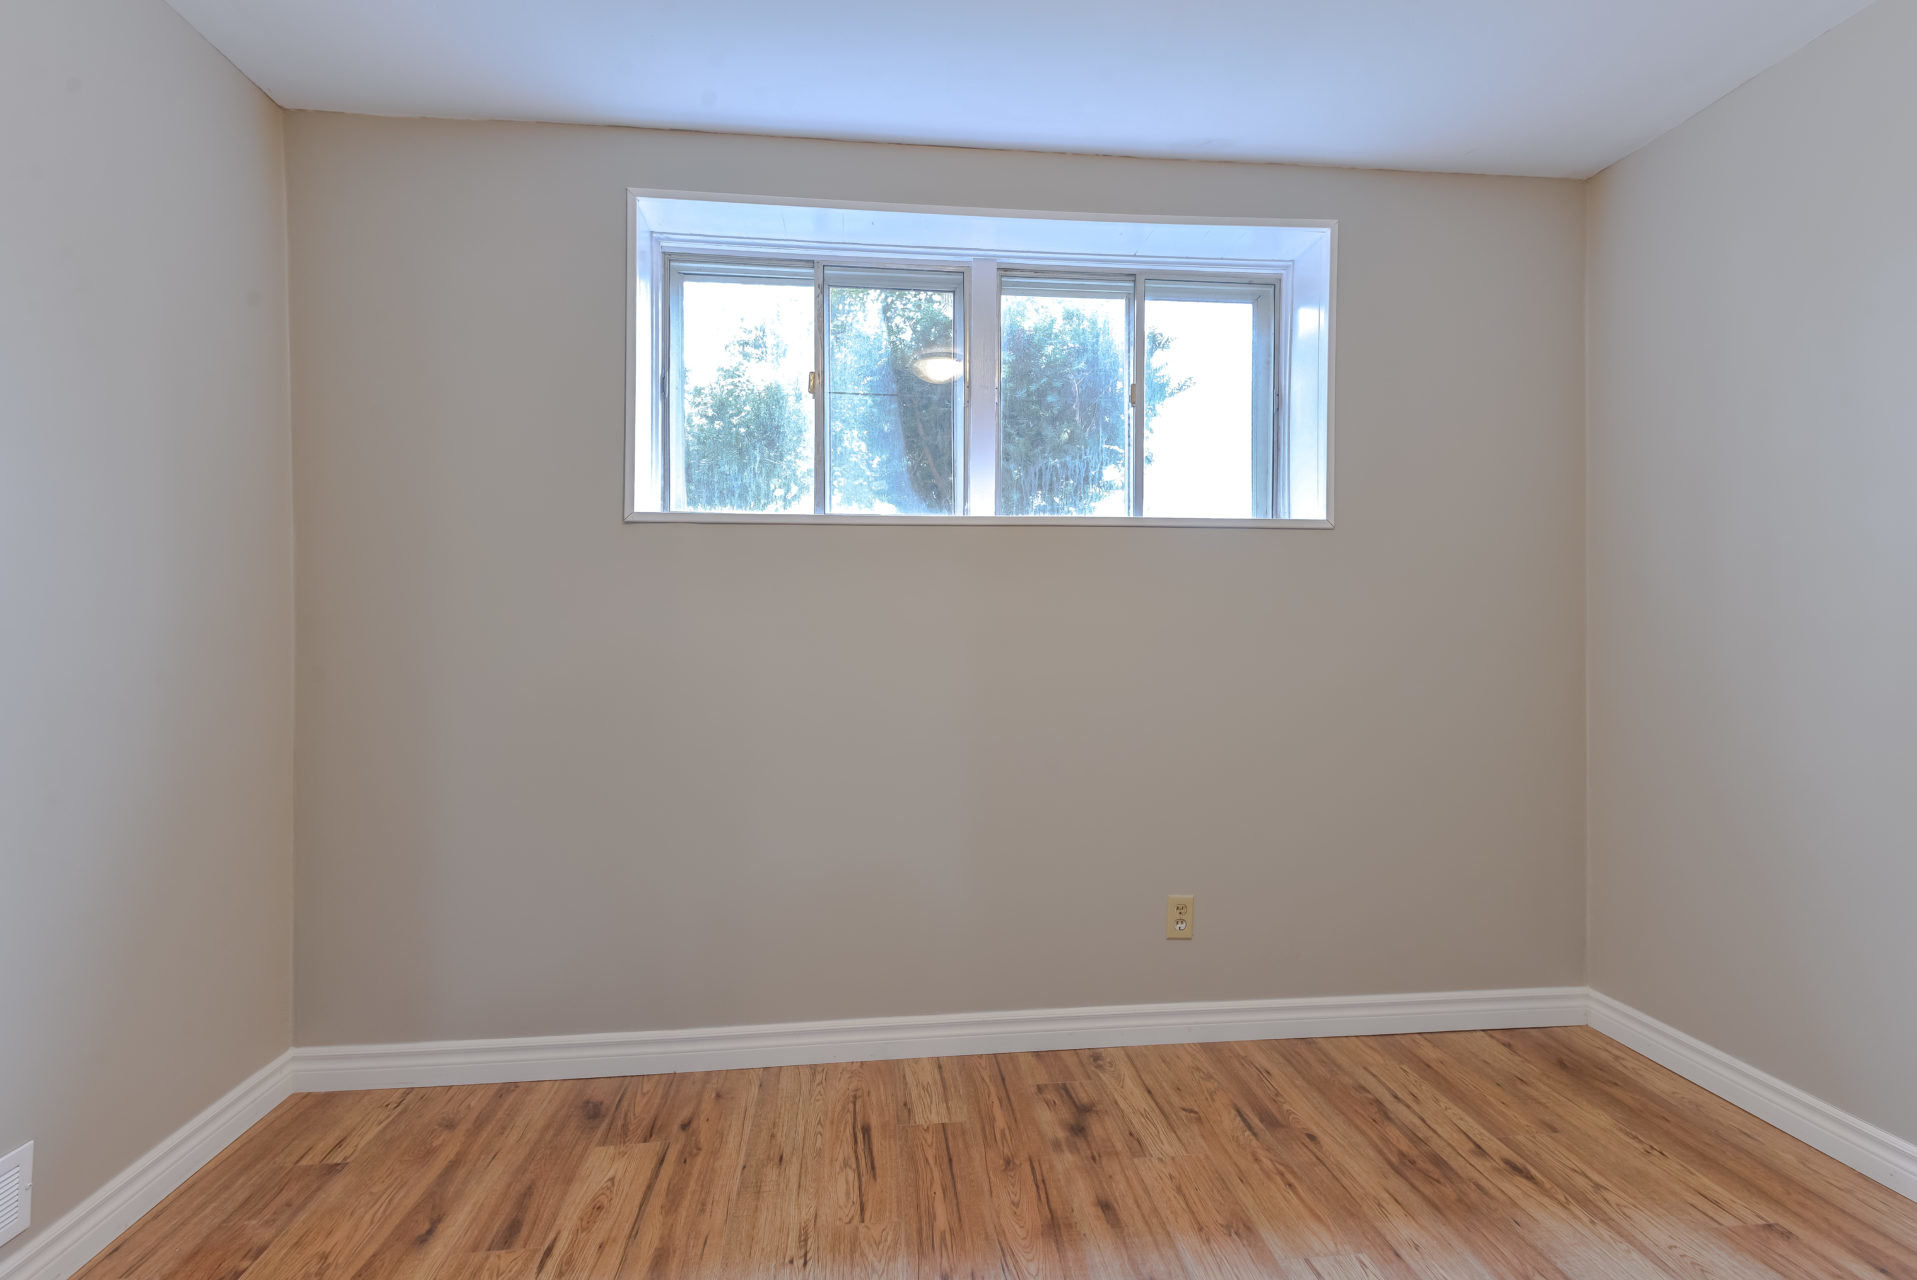 hardwood flooring sale in mississauga of 1695 sandgate crescent mississauga by kyle gouveia within 389349